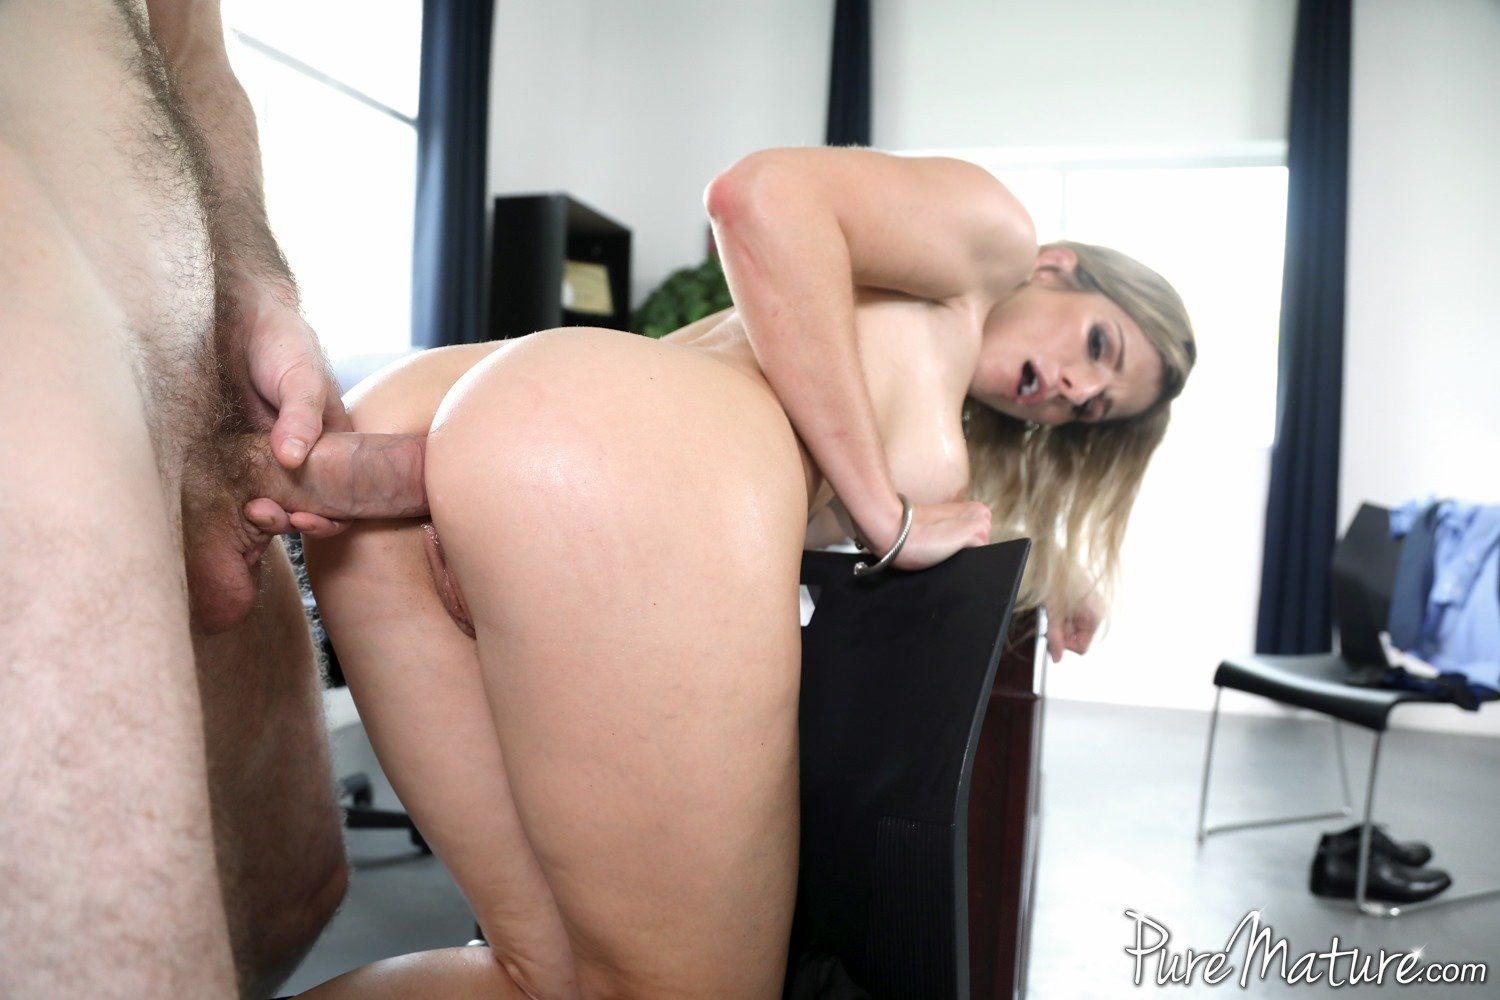 Excellent milf office 4some brilliant